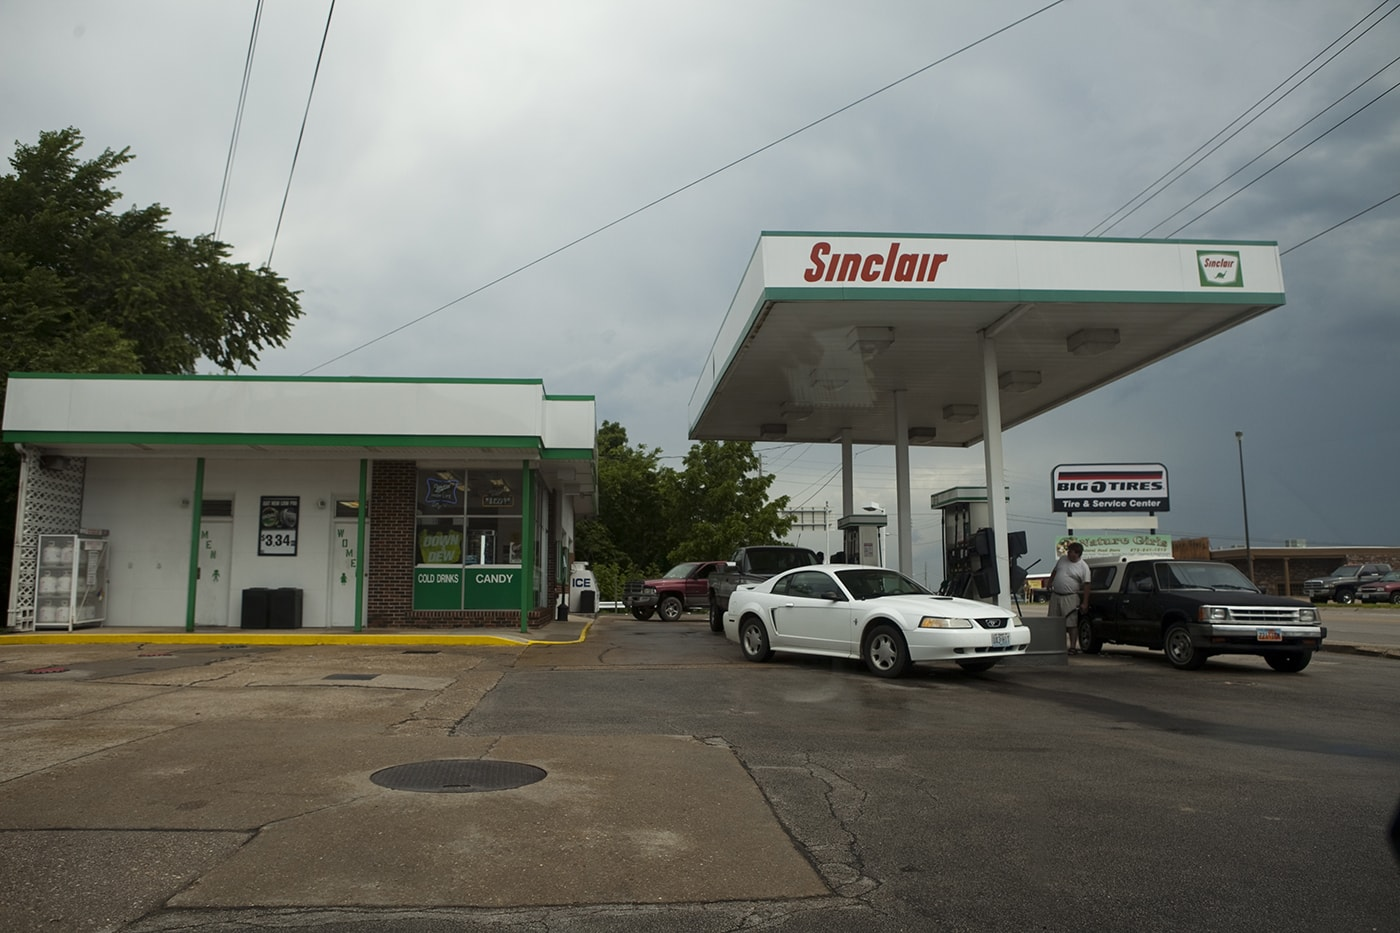 Sinclair gas station without a dinosaur in Missouri